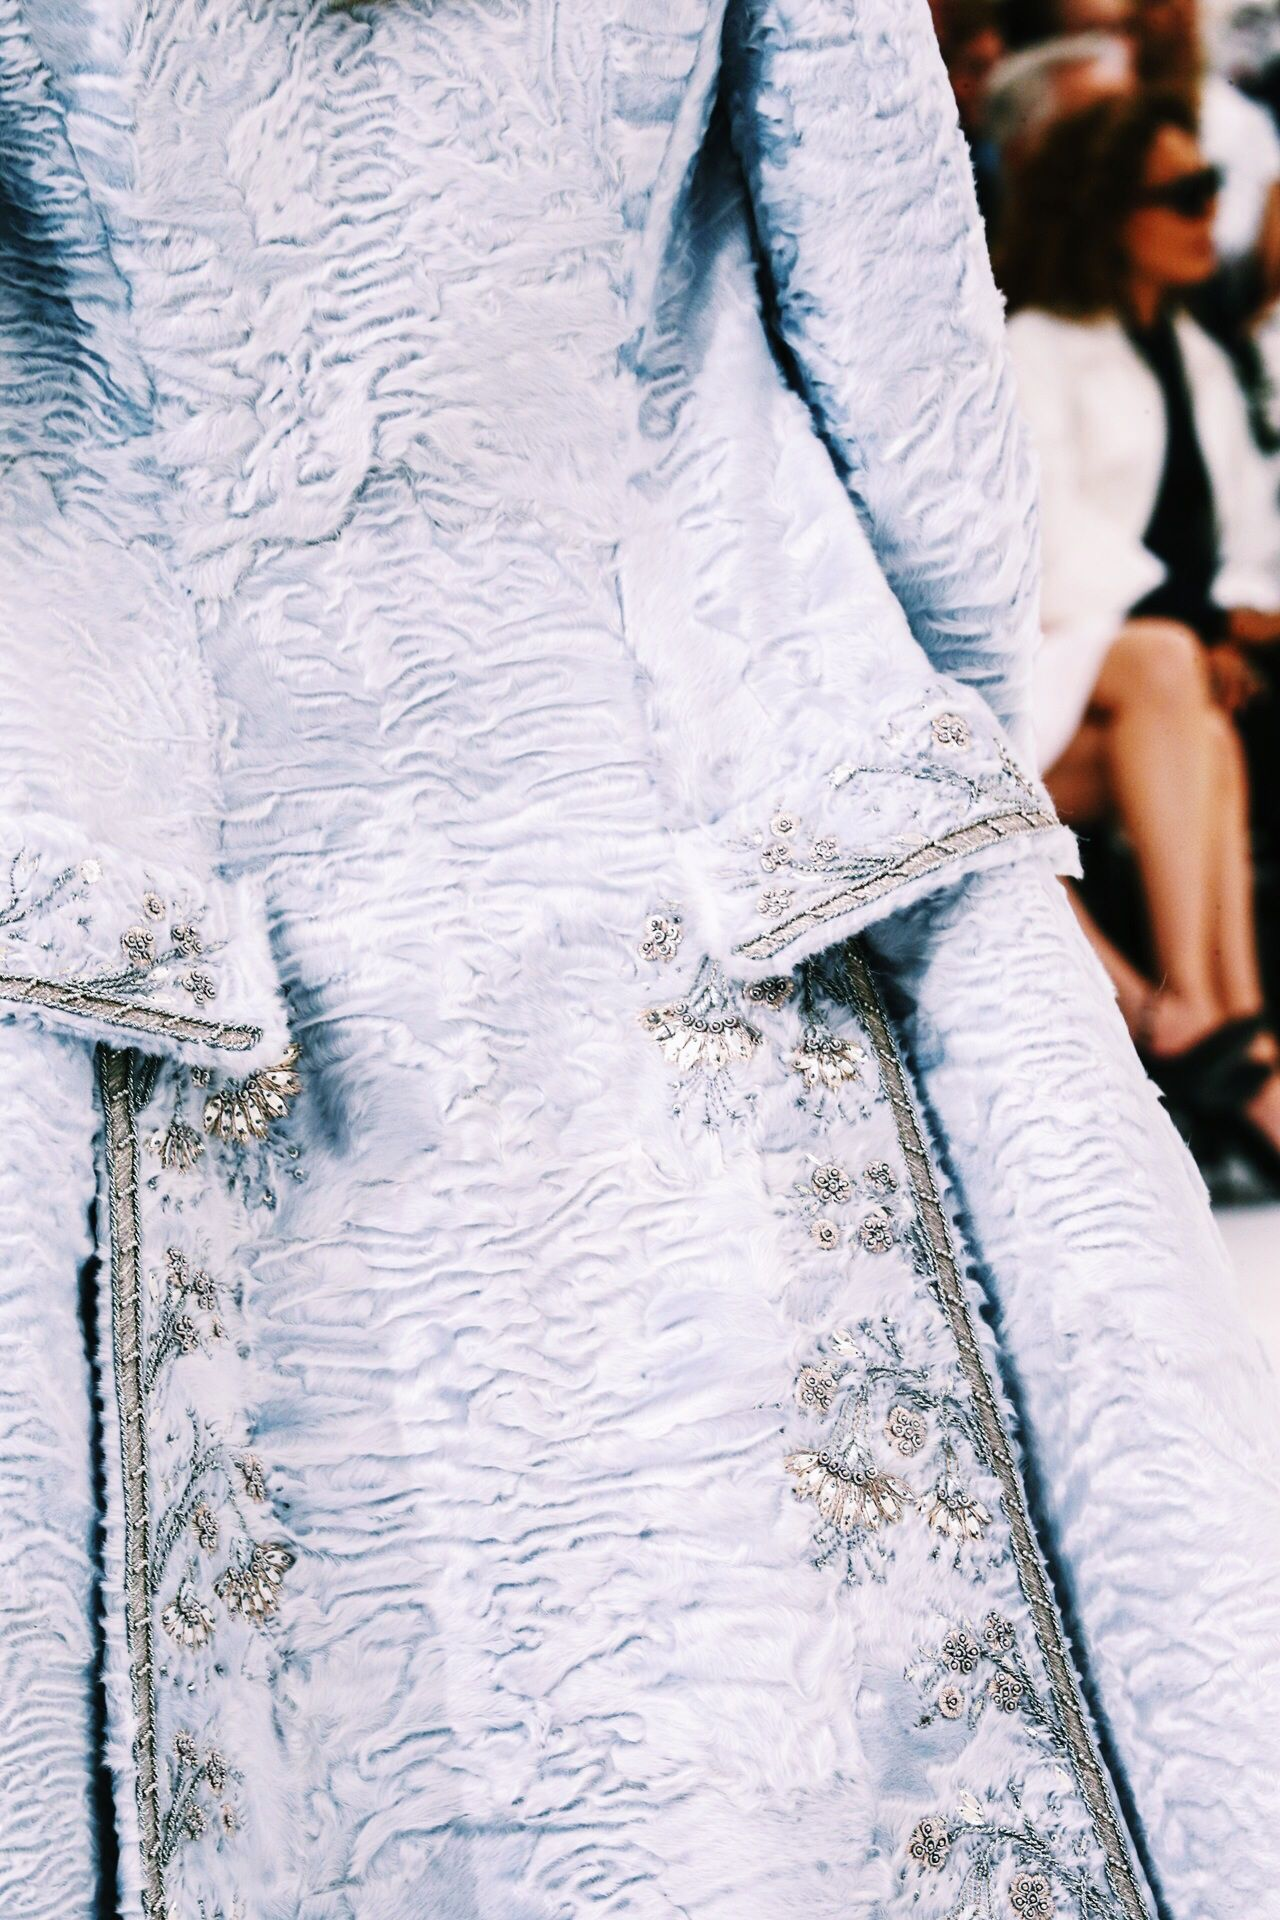 Christian Dior Fall/Winter 2014 Haute Couture, palest blue